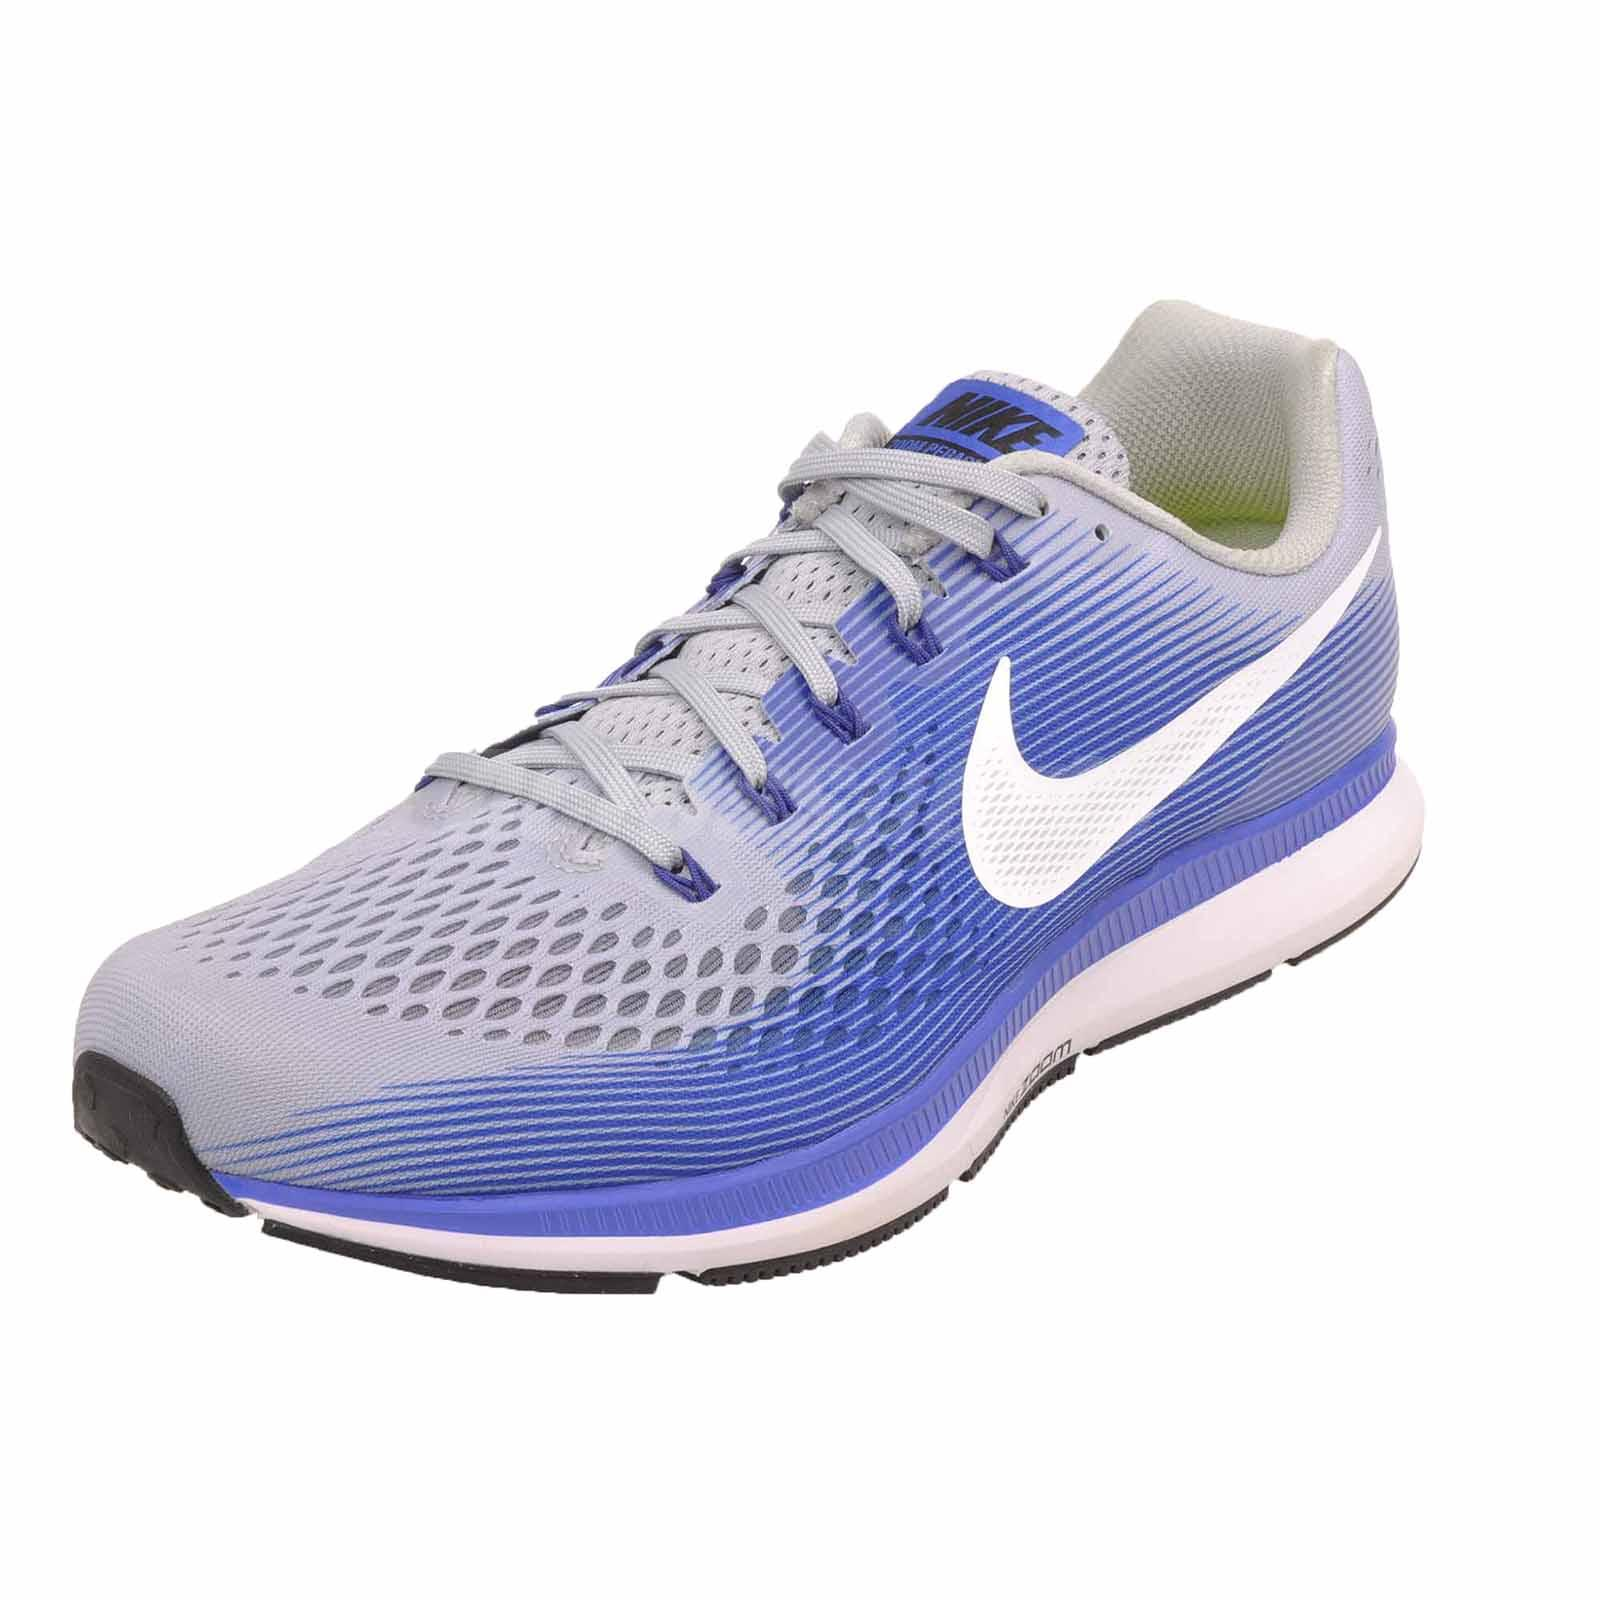 5edd5fa258964 Nike Air Zoom Pegasus 34 (4E) Running Shoes Mens Wide Grey Blue ...